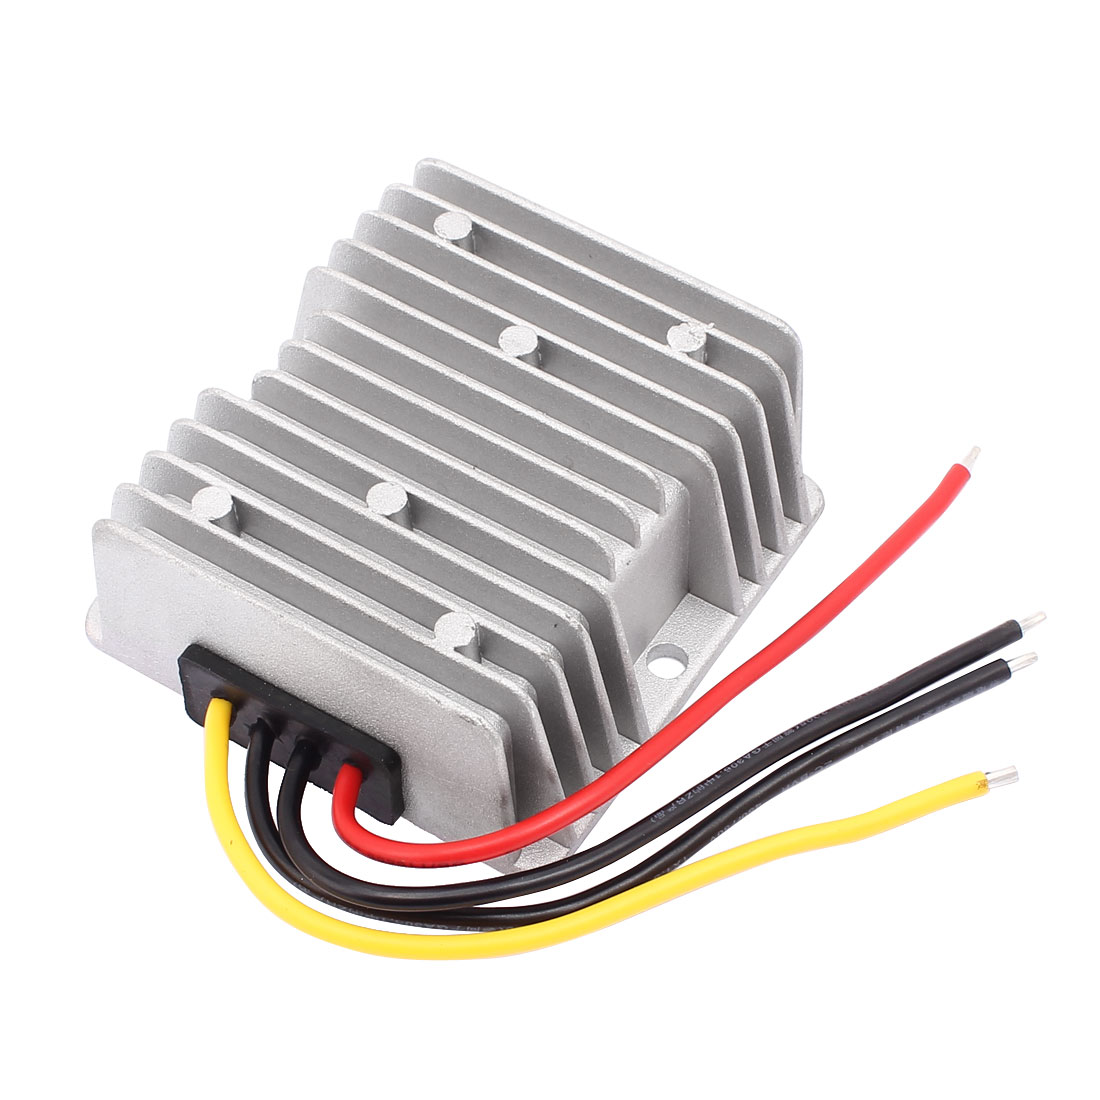 DC12V(10V-36V) to DC12V 4A 48W Booster Waterproof Car Power Converter Regulator Transformer